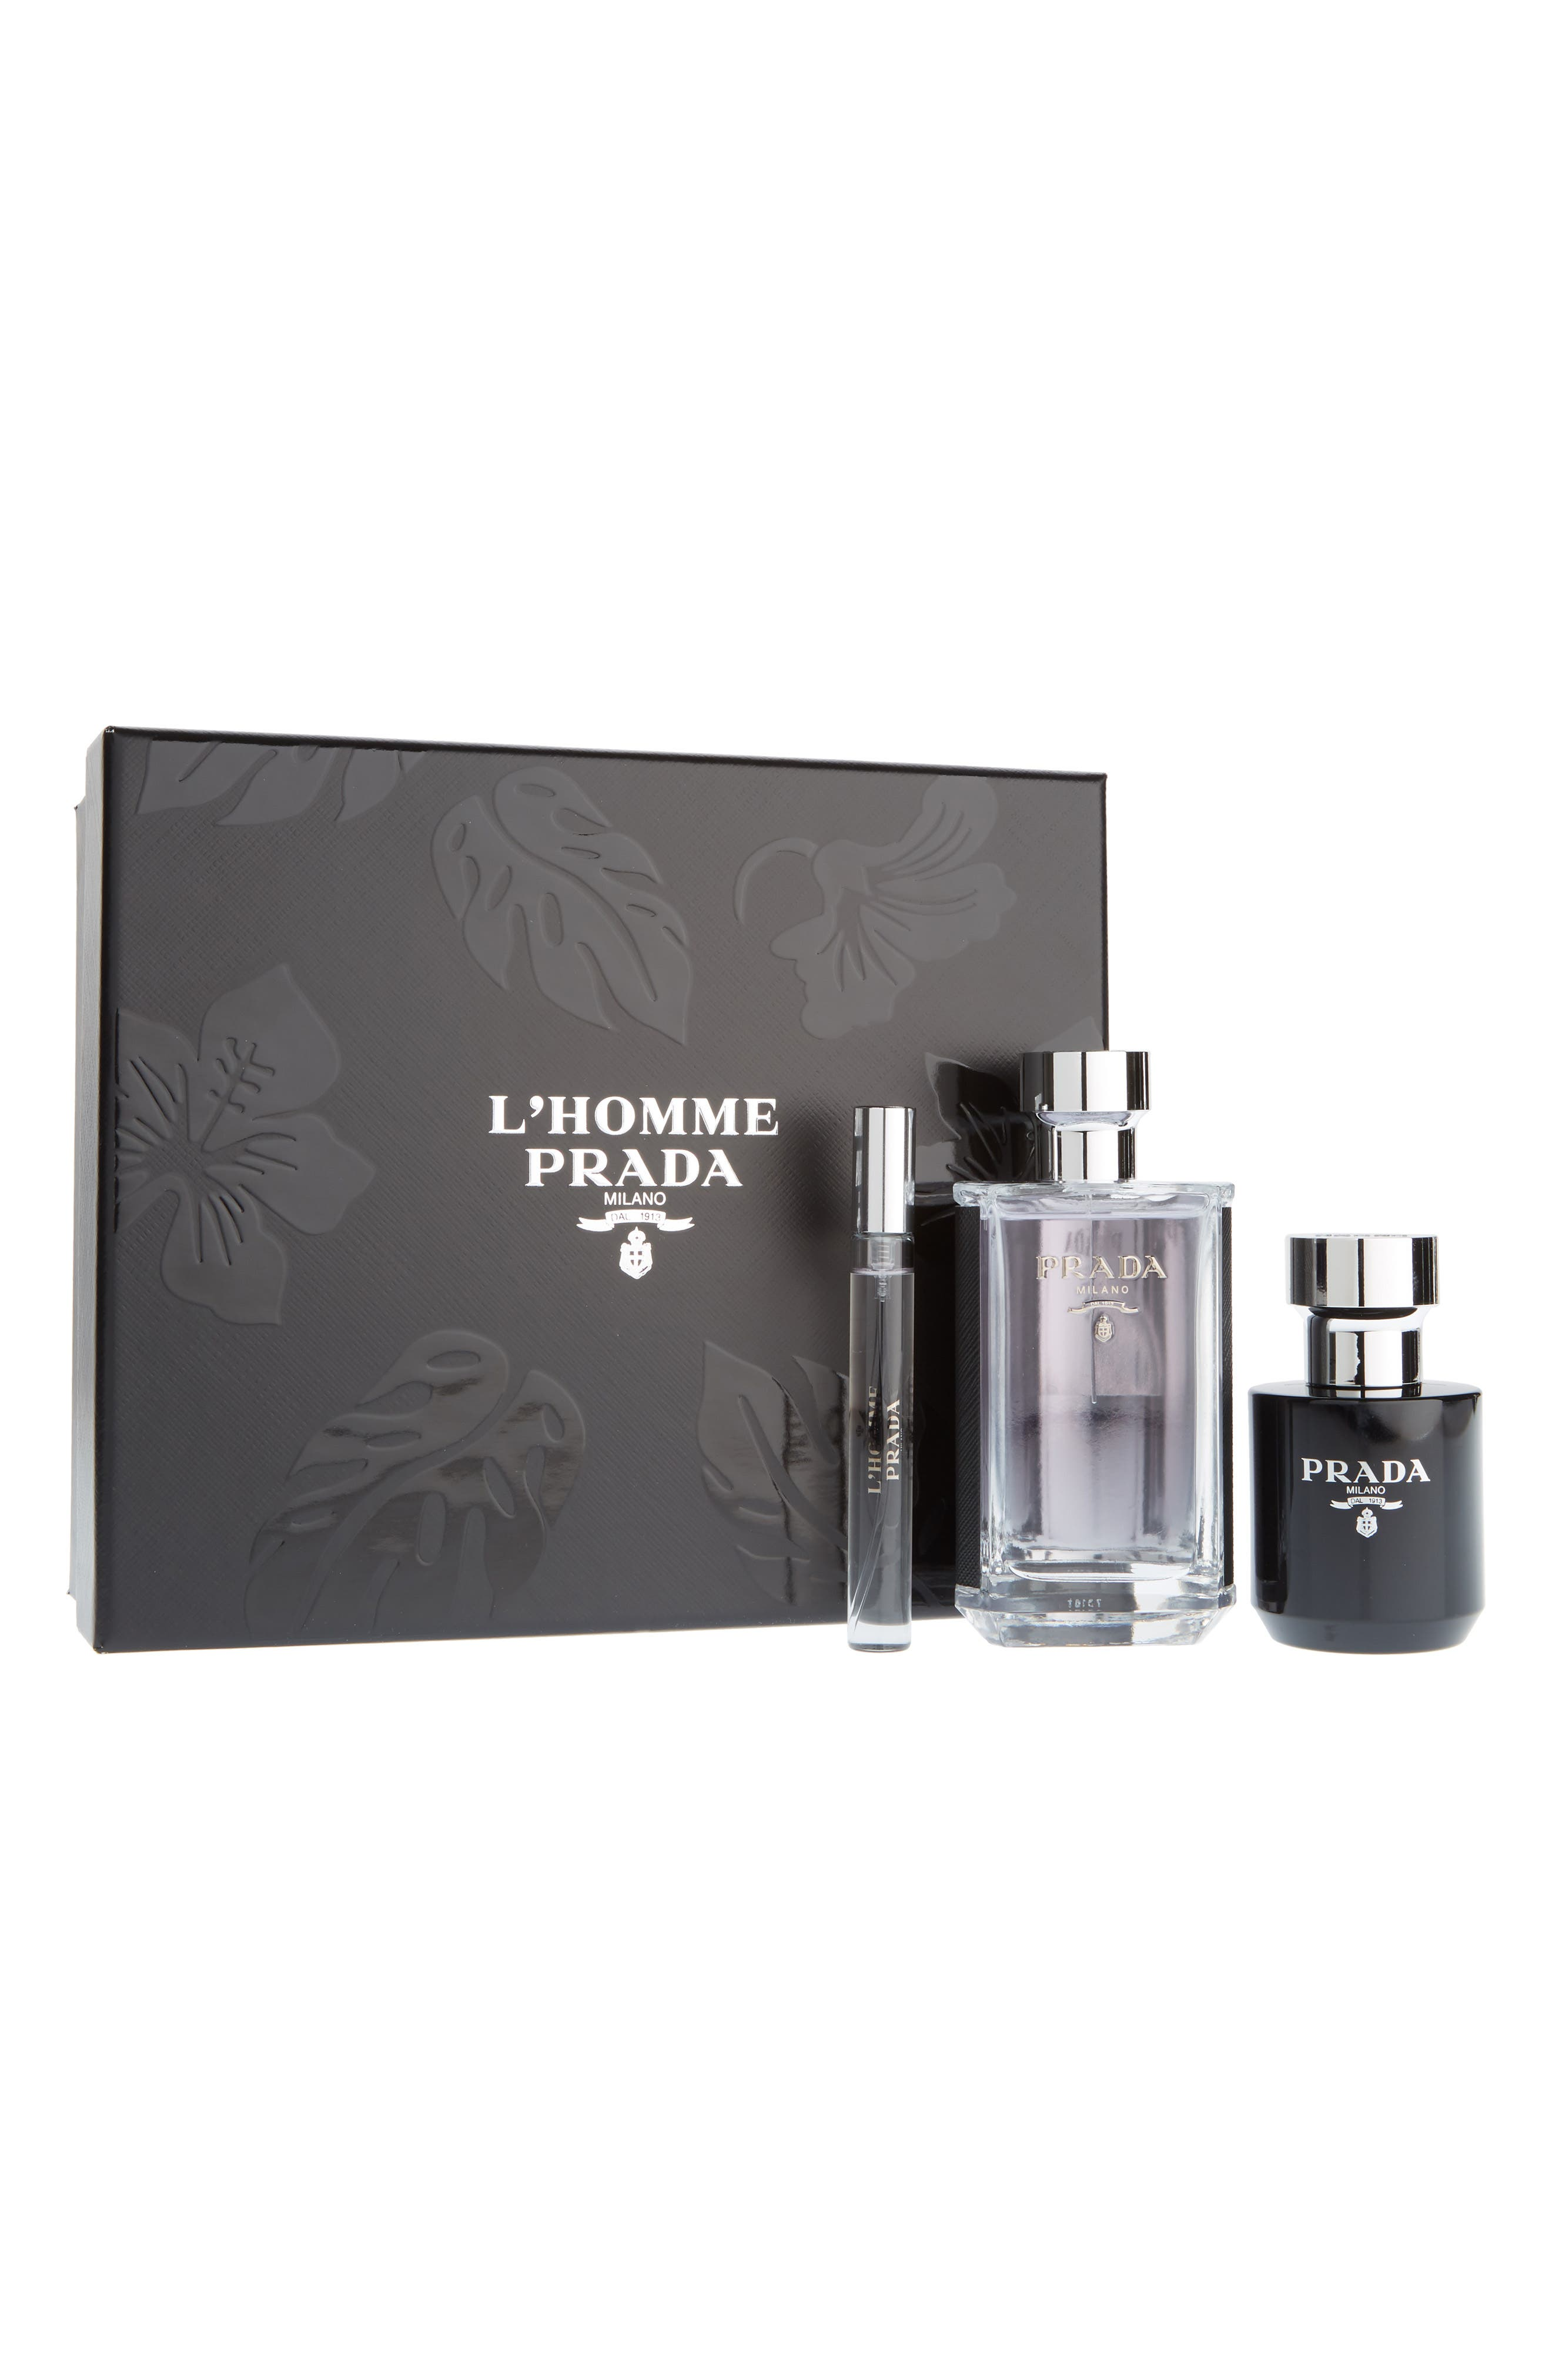 Prada L'Homme Prada Set ($115 Value)